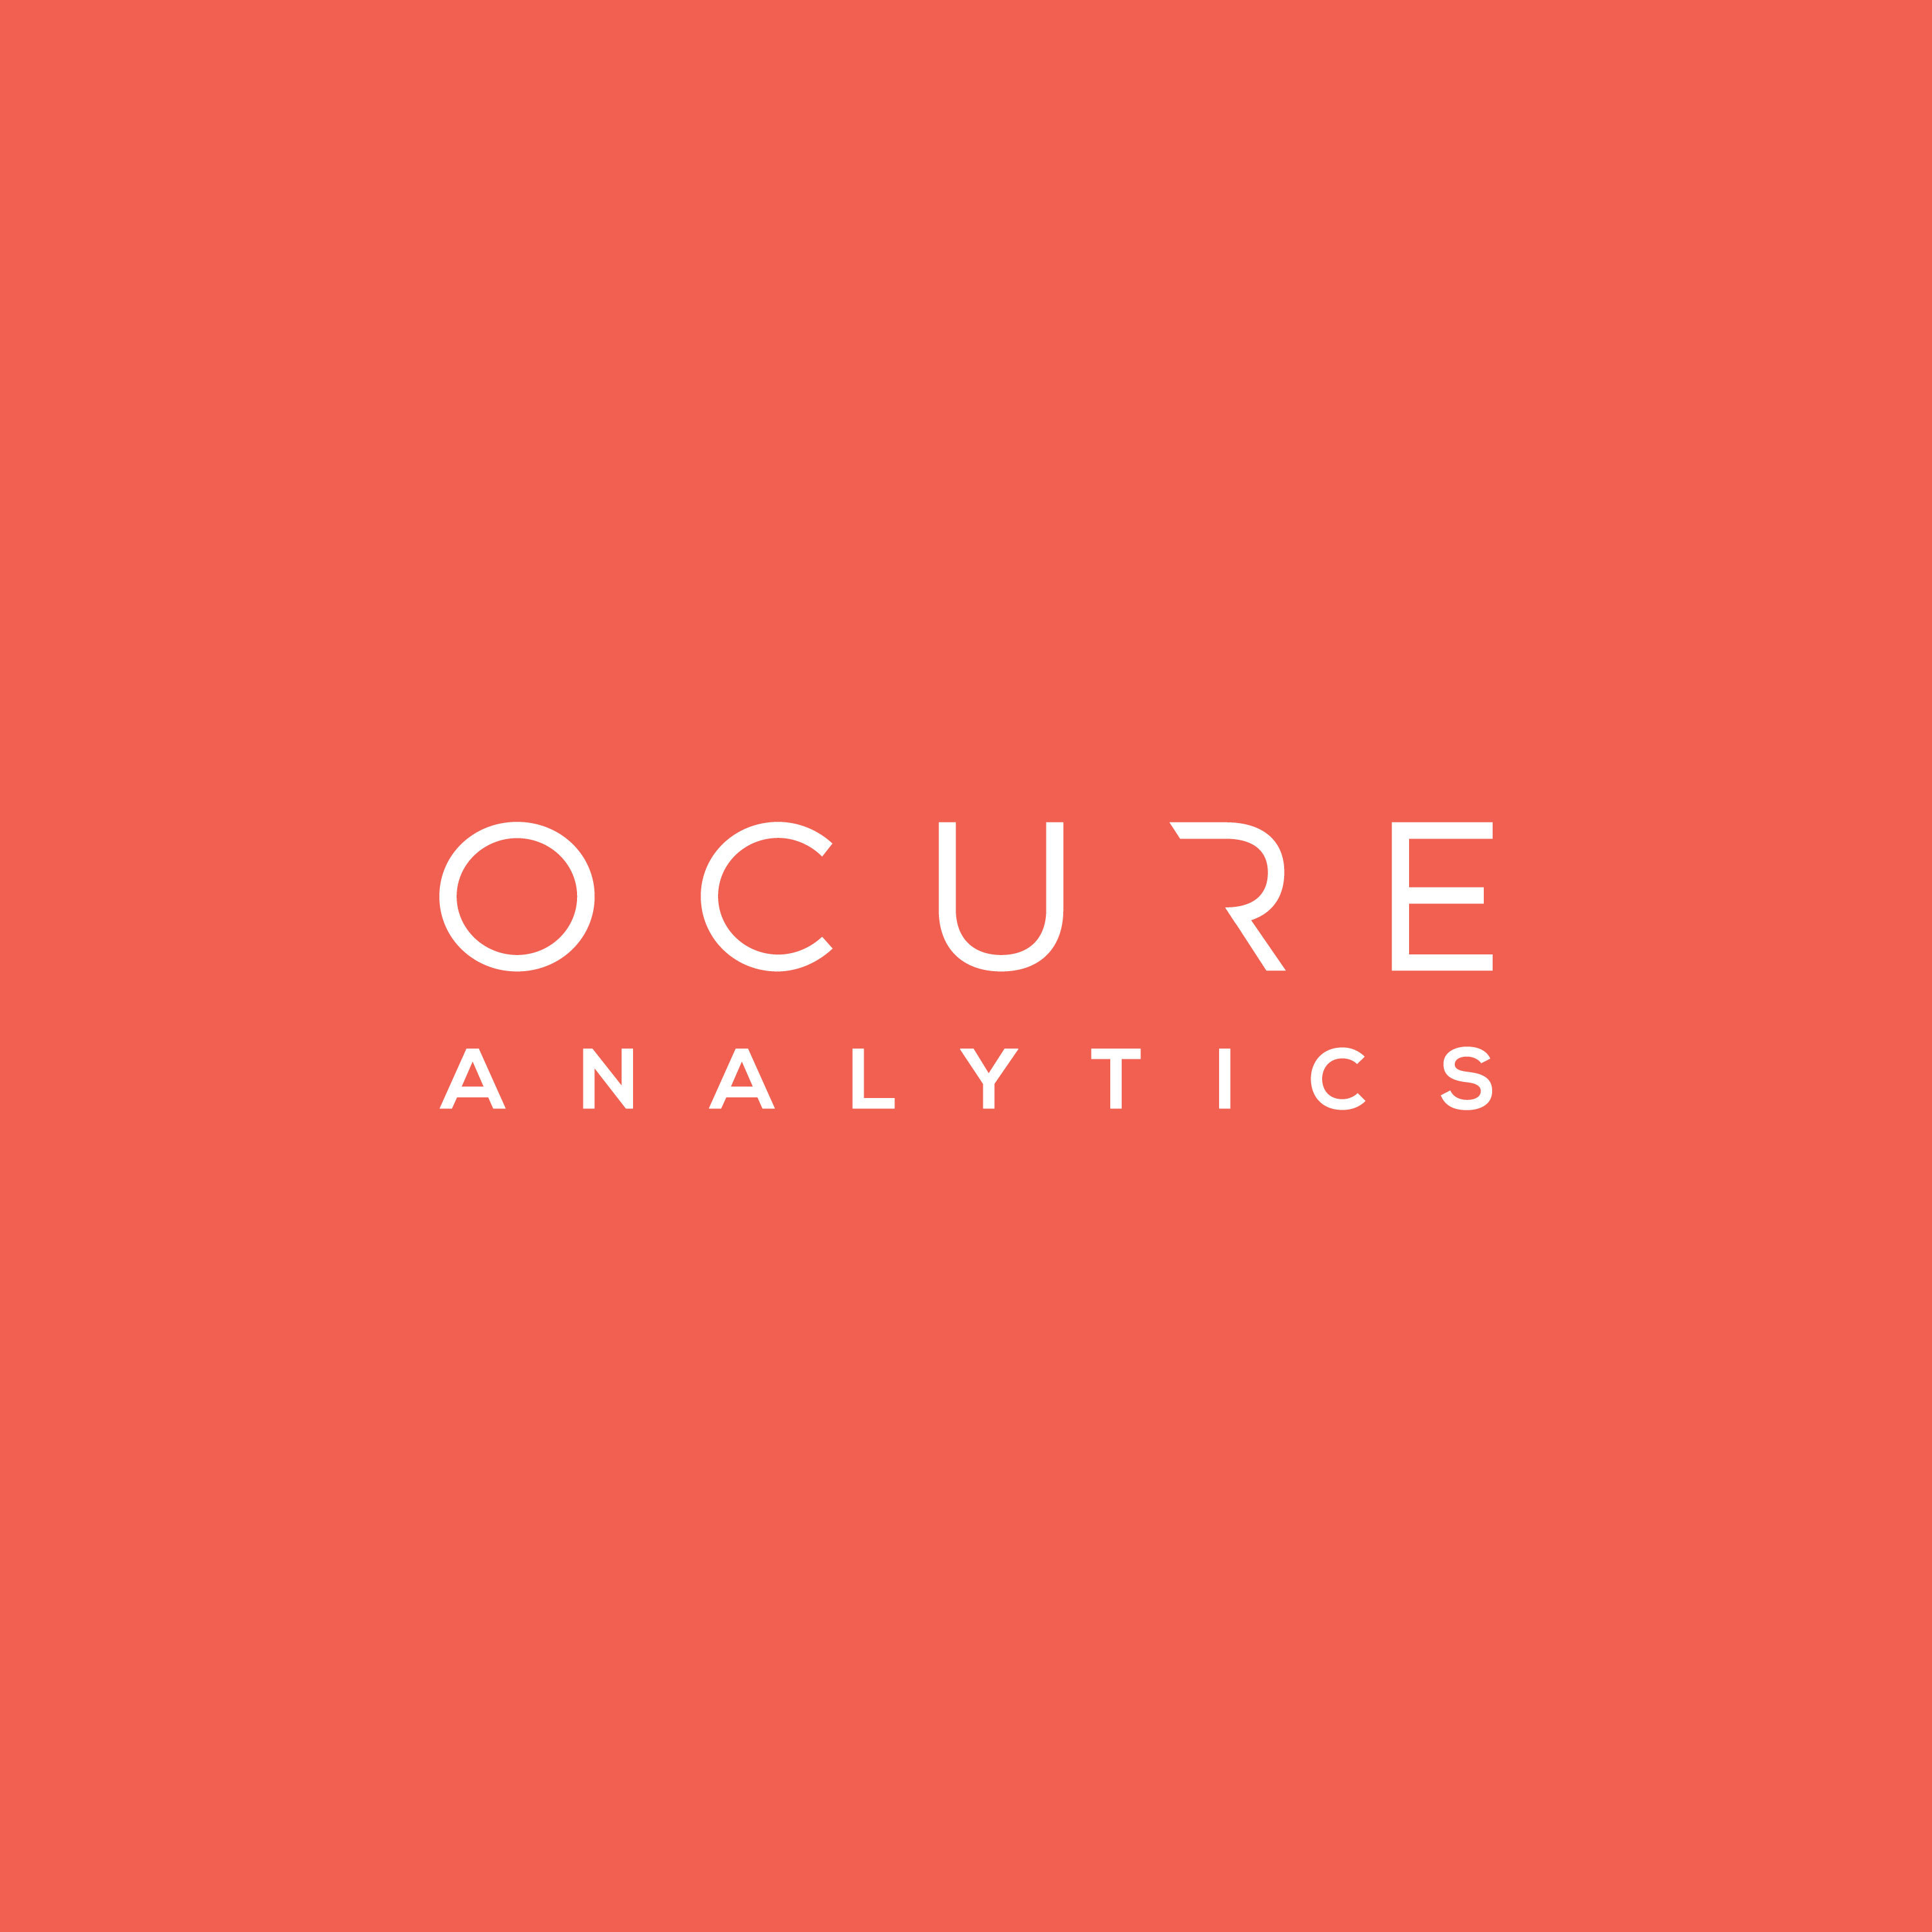 Ocure Analytics